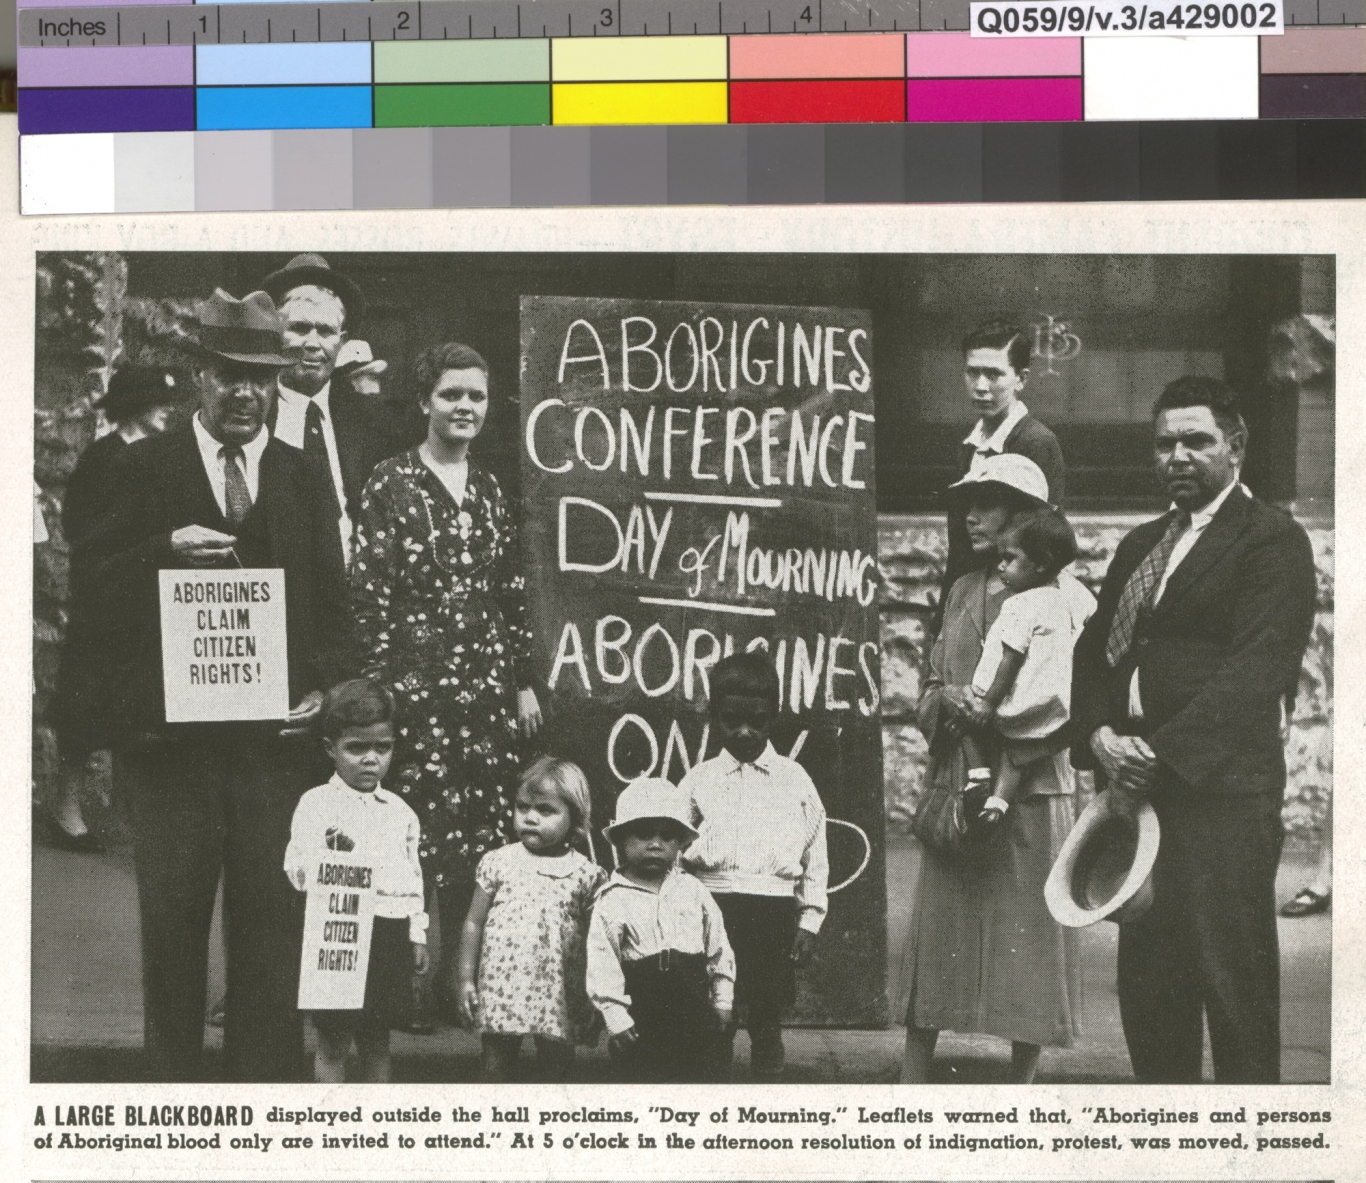 Aborigines day of mourning, 26 January 1938. State Library of NSW a429002